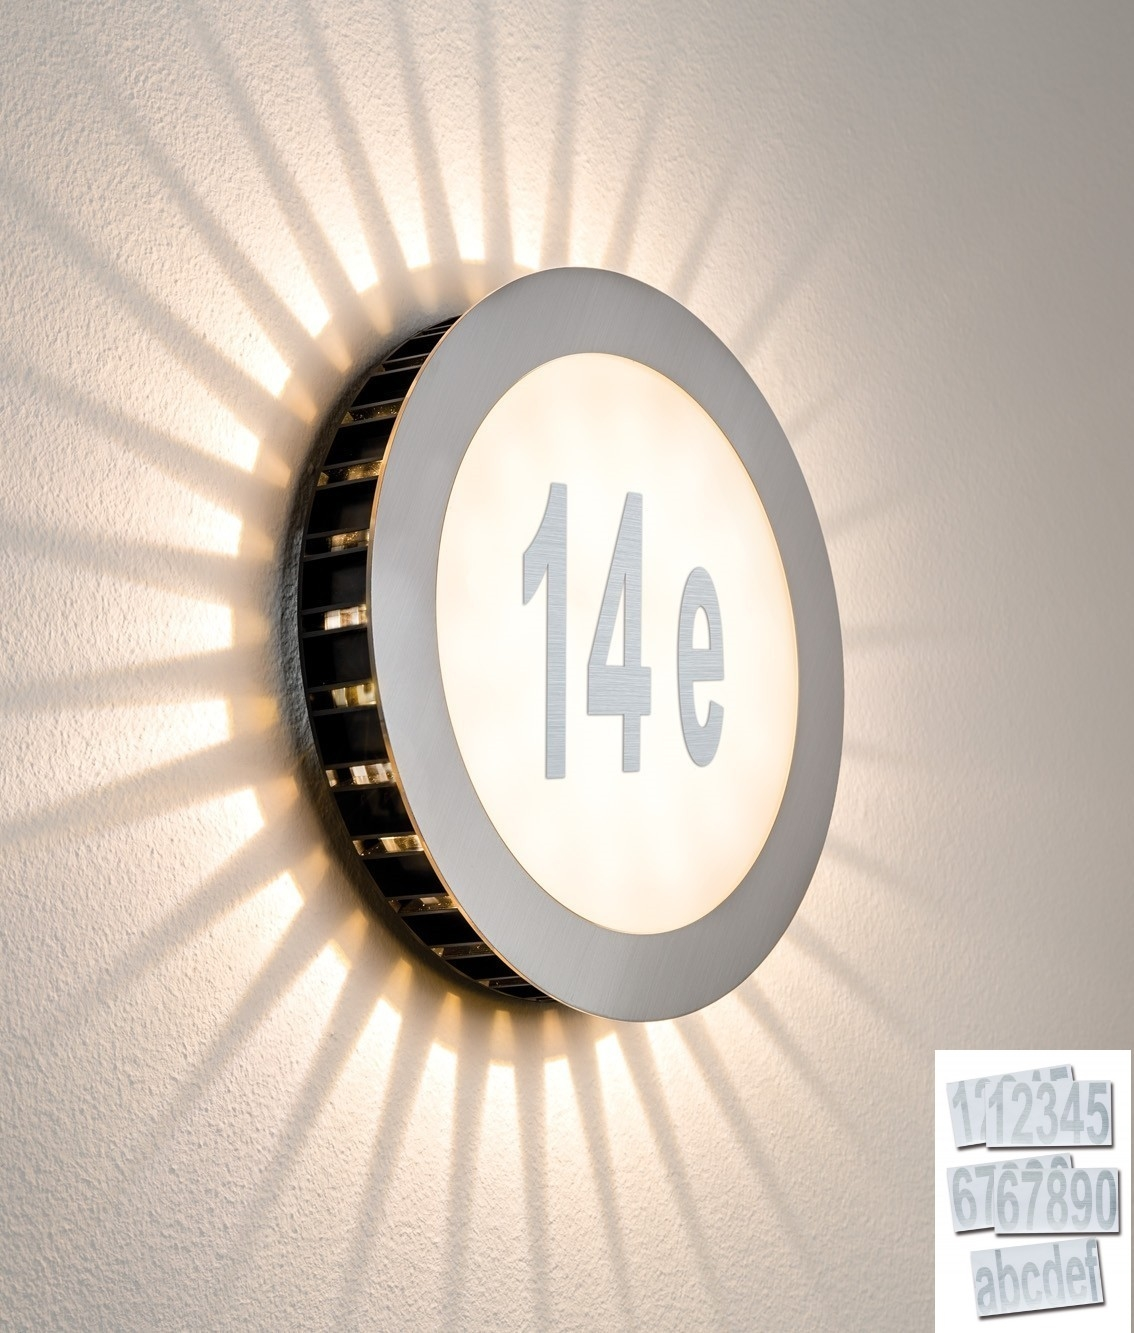 Led illuminated house number fitting Led house numbers